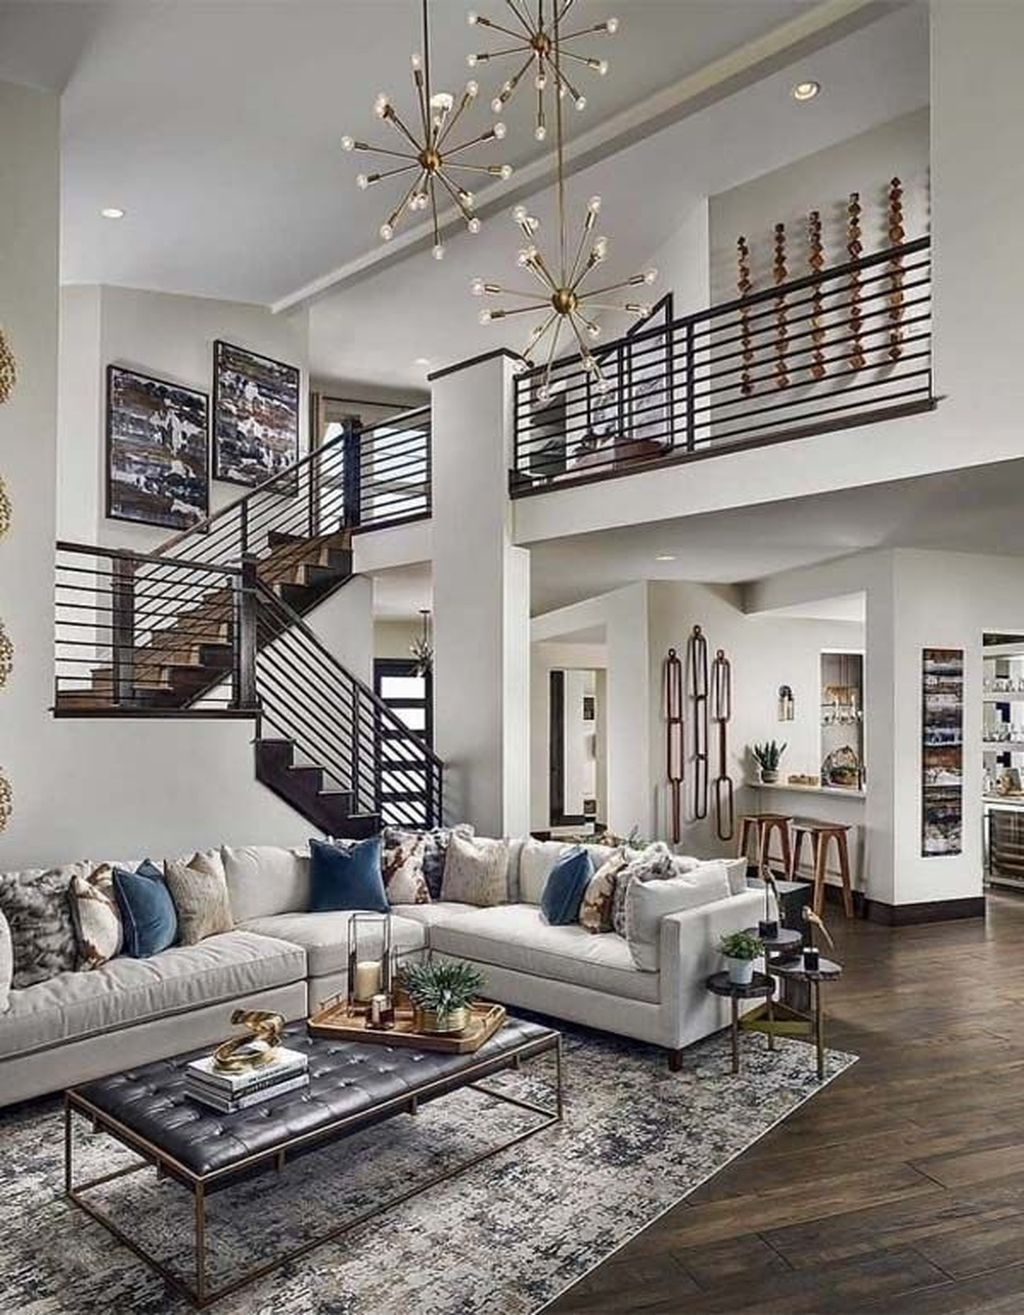 Marvelous Interior Design Ideas For Home That Looks Cool 02